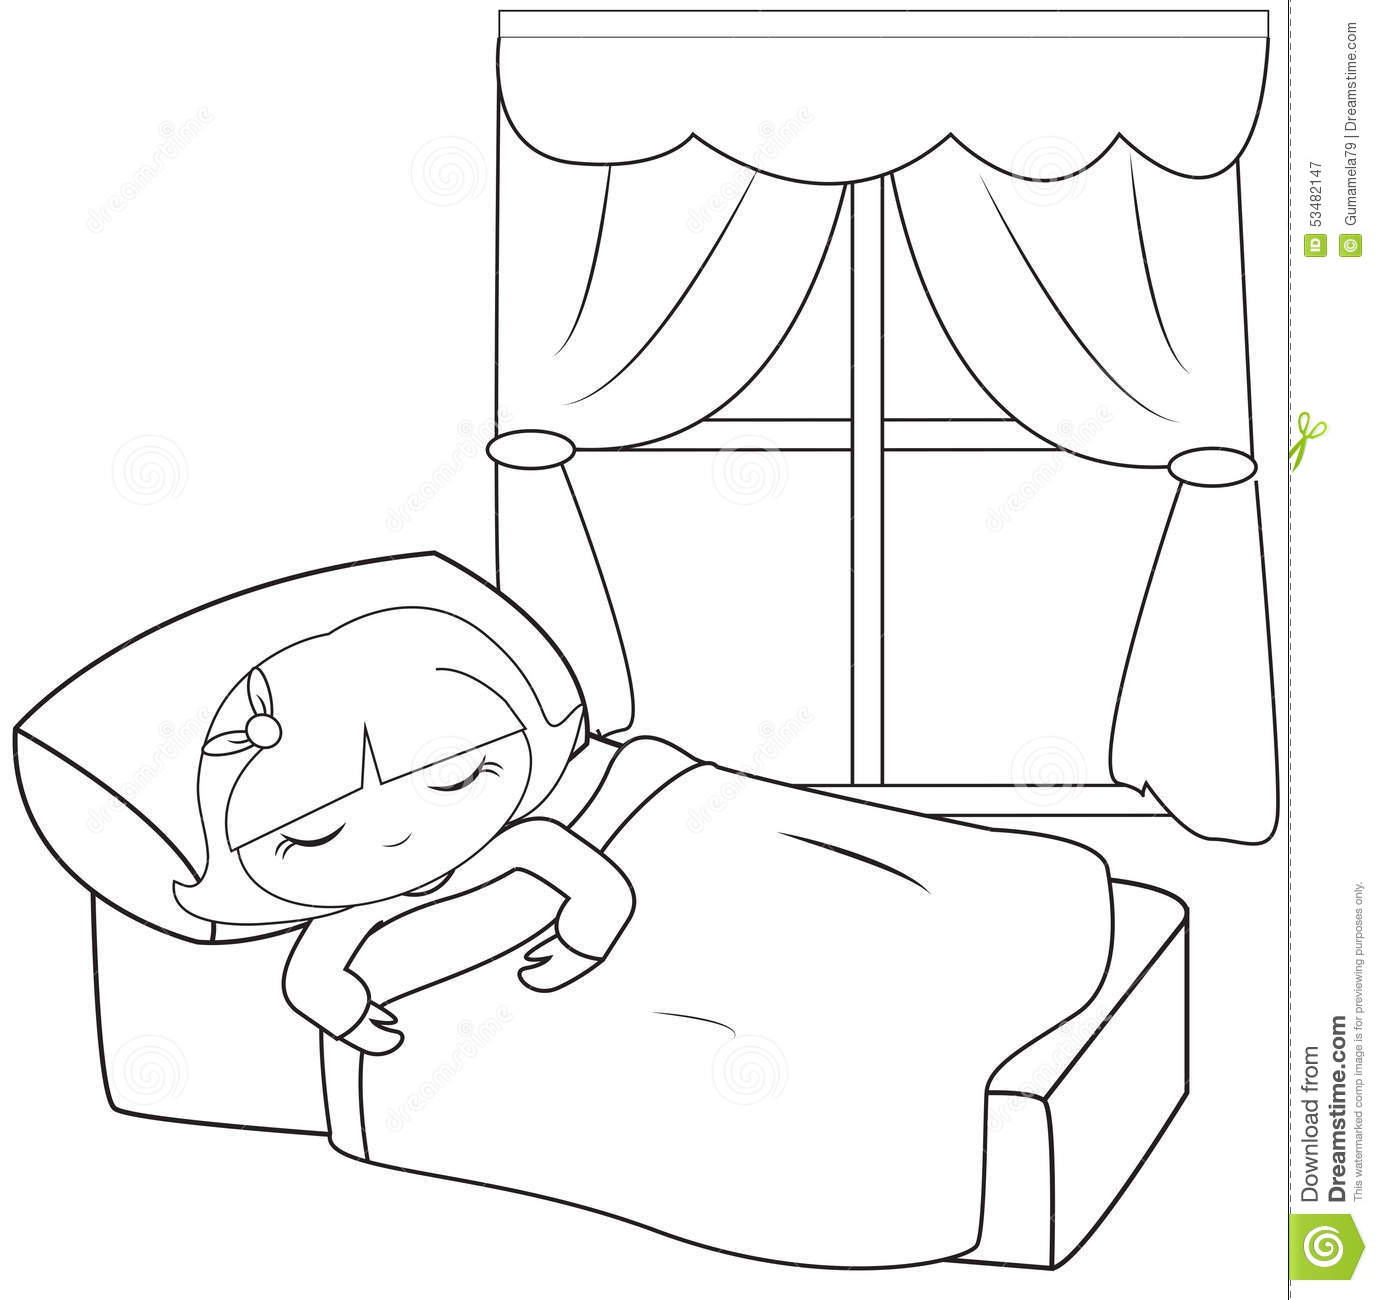 Coloring school elements for little kids royalty free for Sleeping coloring page